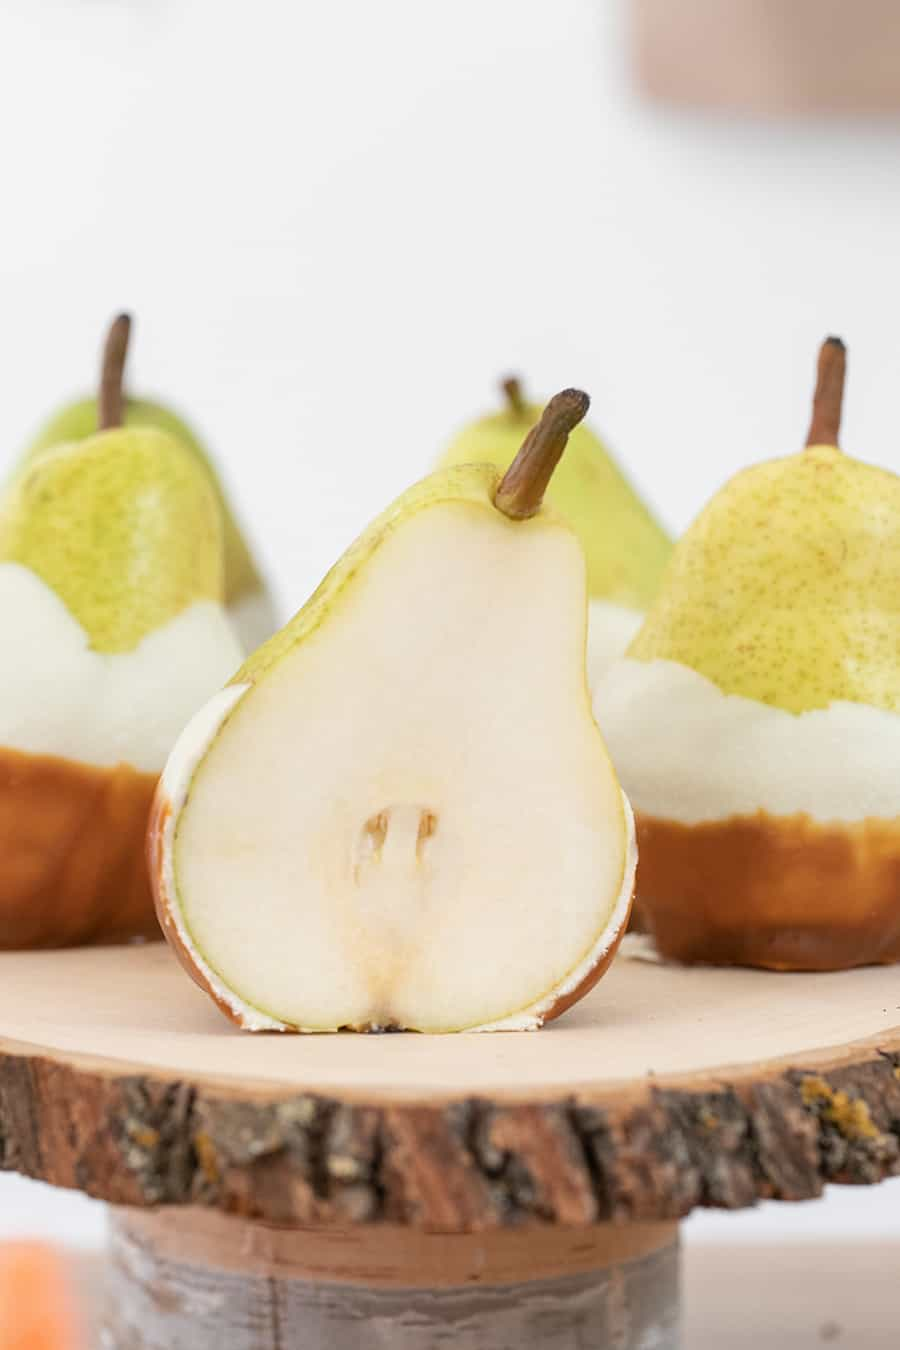 shot of a pear on the cake stand